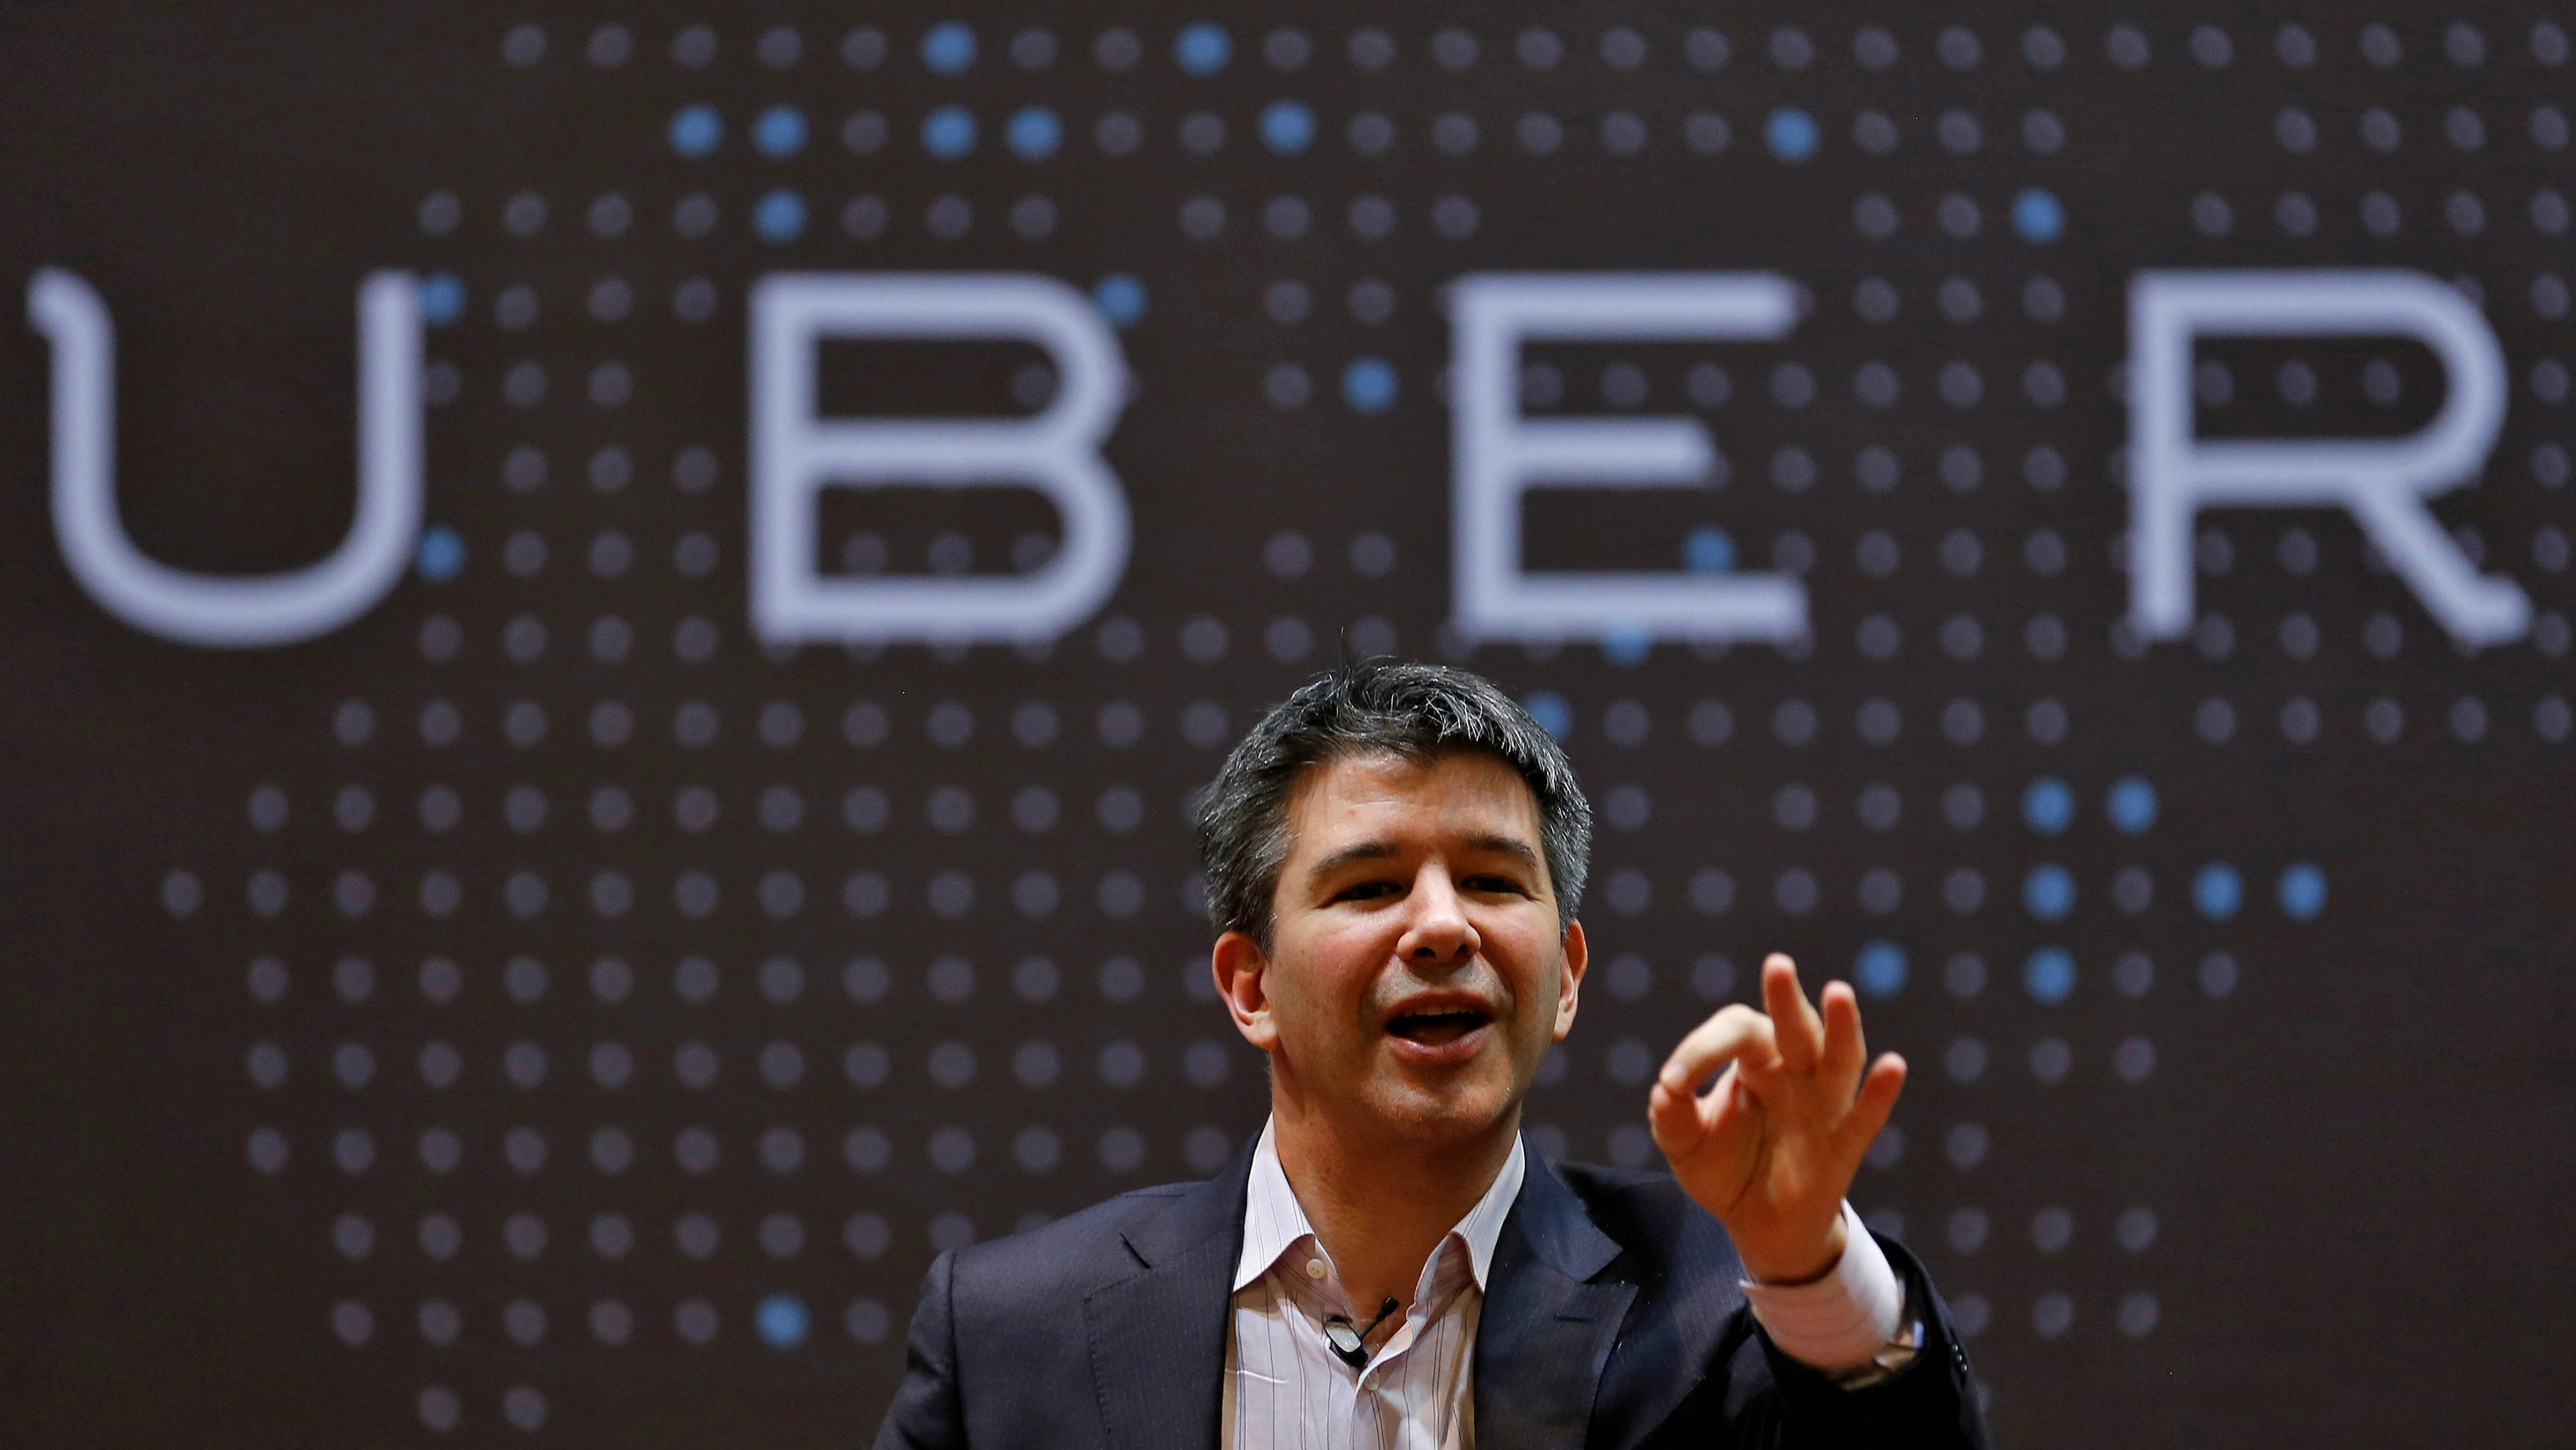 FILE PHOTO - Uber CEO Travis Kalanick speaks to students during an interaction at the Indian Institute of Technology (IIT) campus in Mumbai, India on January 19, 2016. REUTERS/Danish Siddiqui/File photo